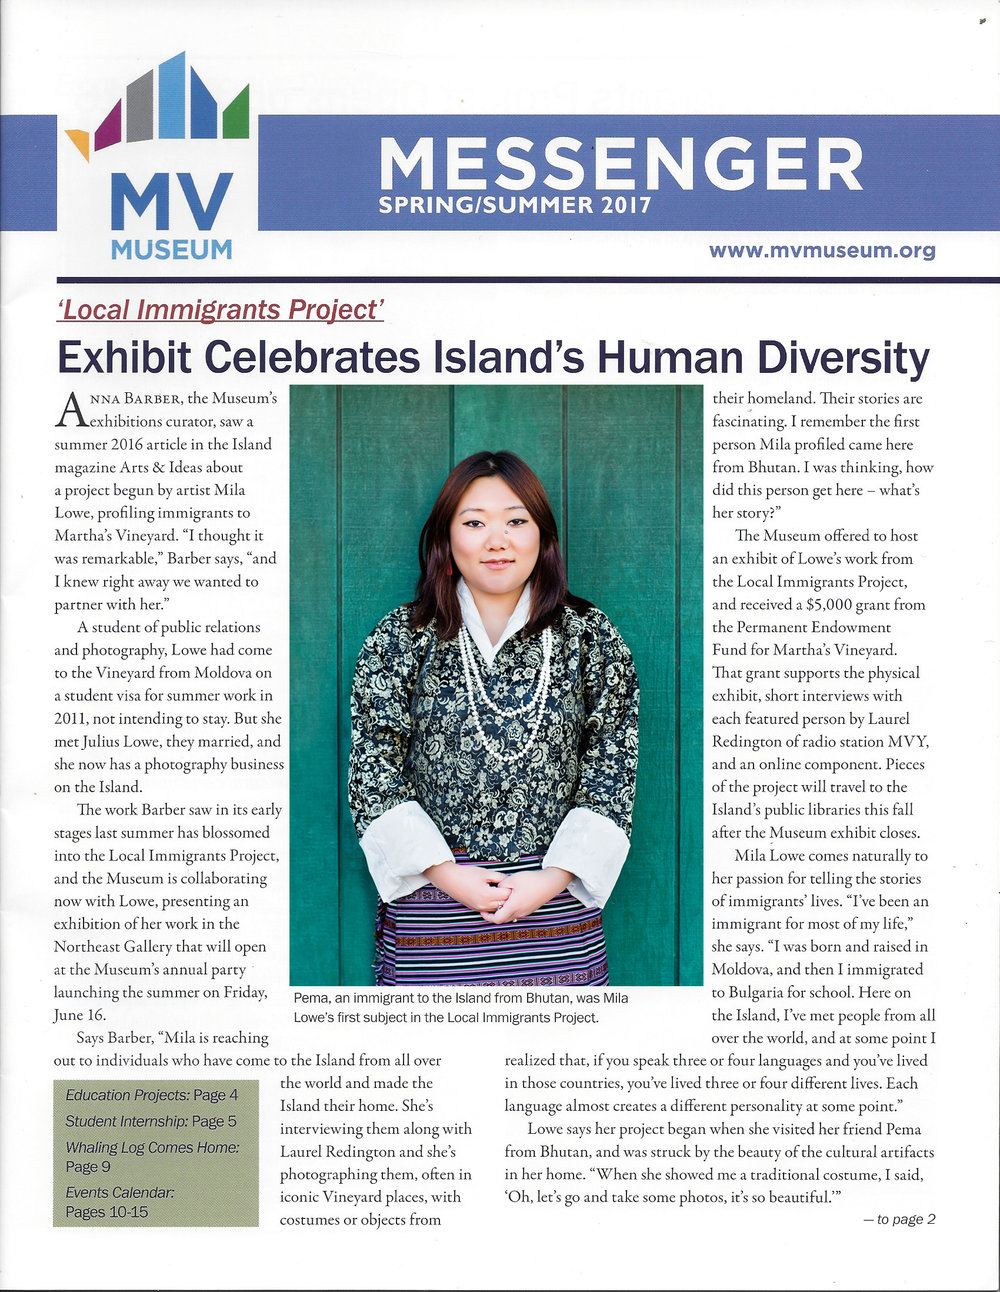 marthas_vineyard_museum_newsletter_about_local_immigrants_project_by_mila_lowe_page_1.jpg